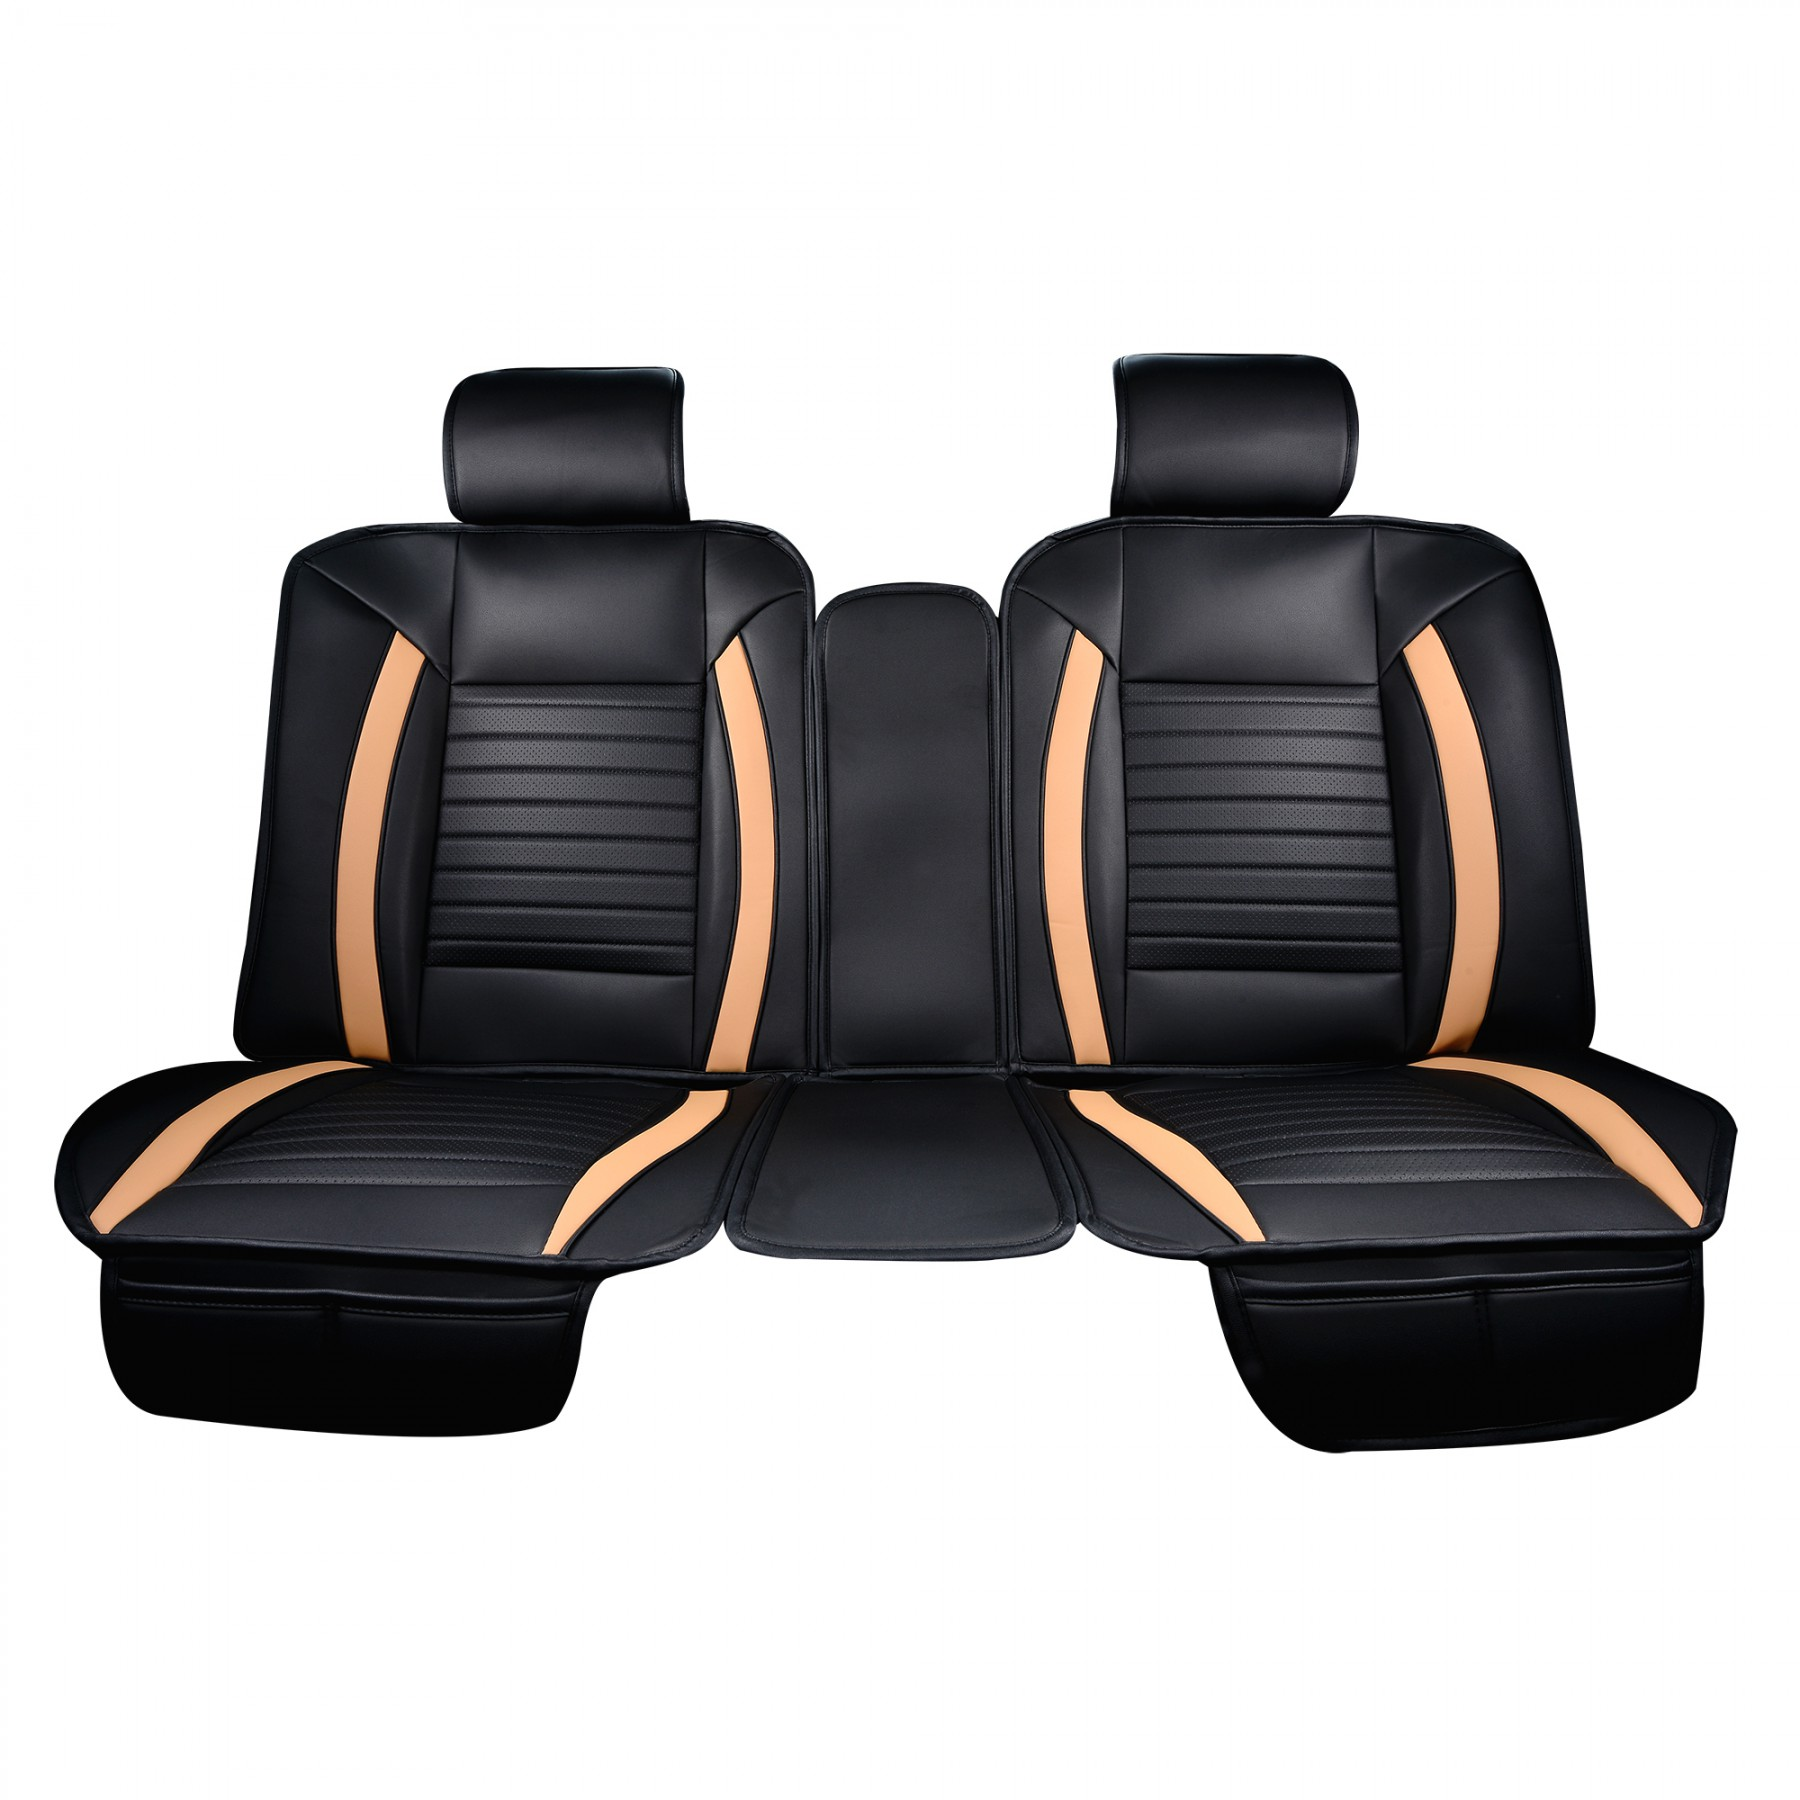 Luxury Series Tan Car Rear Seat Cover